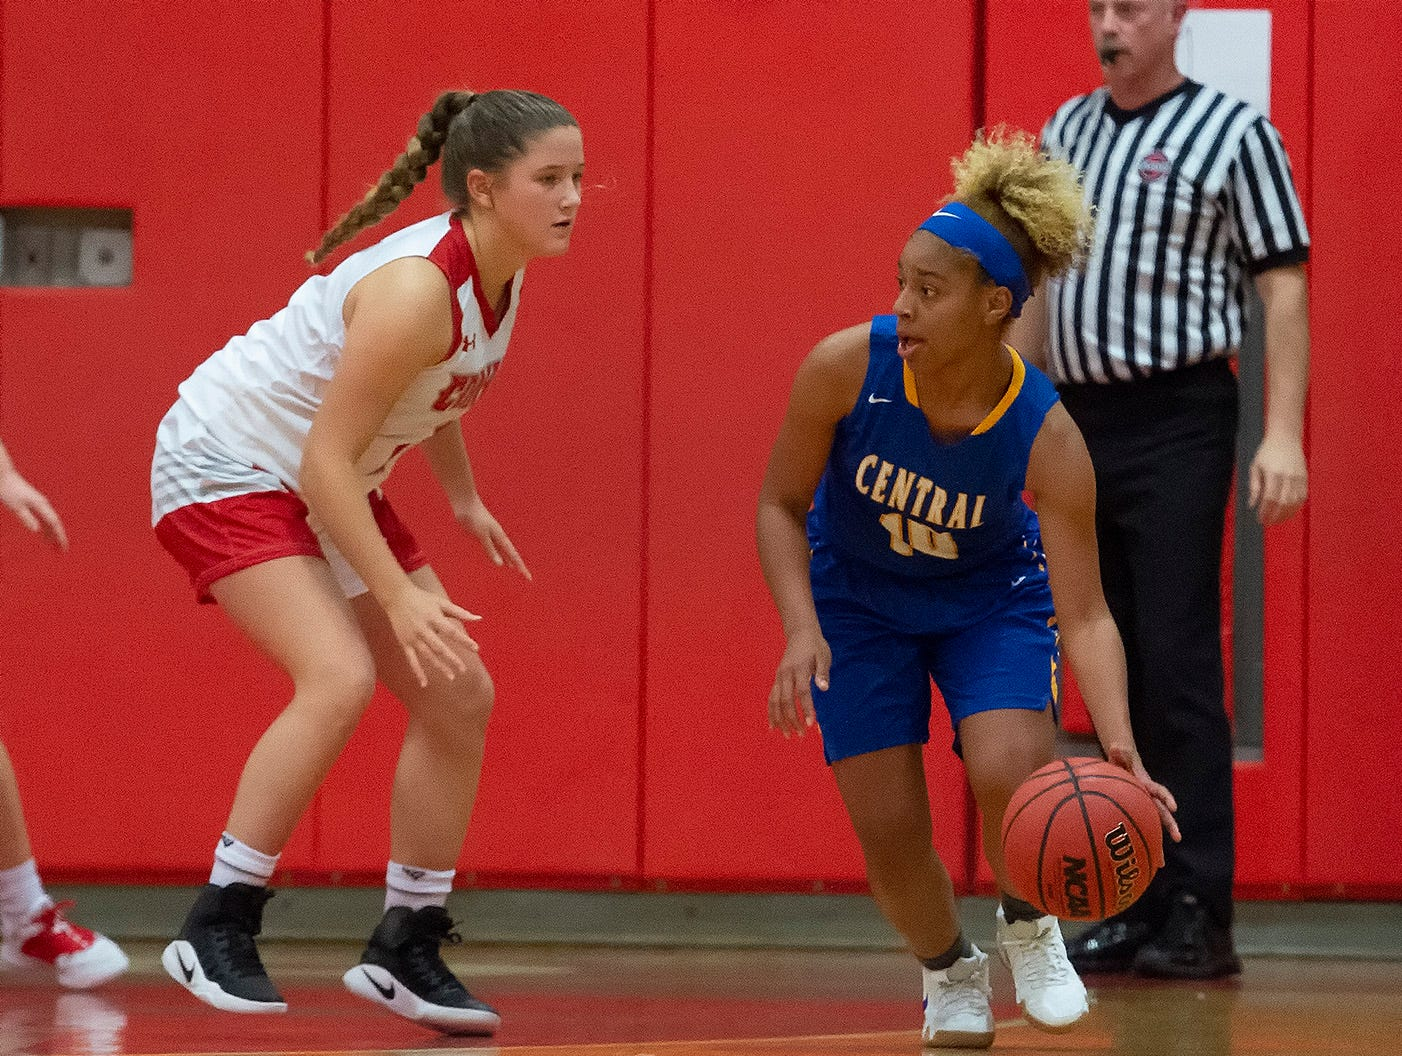 Sussex Central's Azayah Garrison (10) is guarded by Conrad's Erin Ranegan (2) in their game at Conrad Schools of Science.